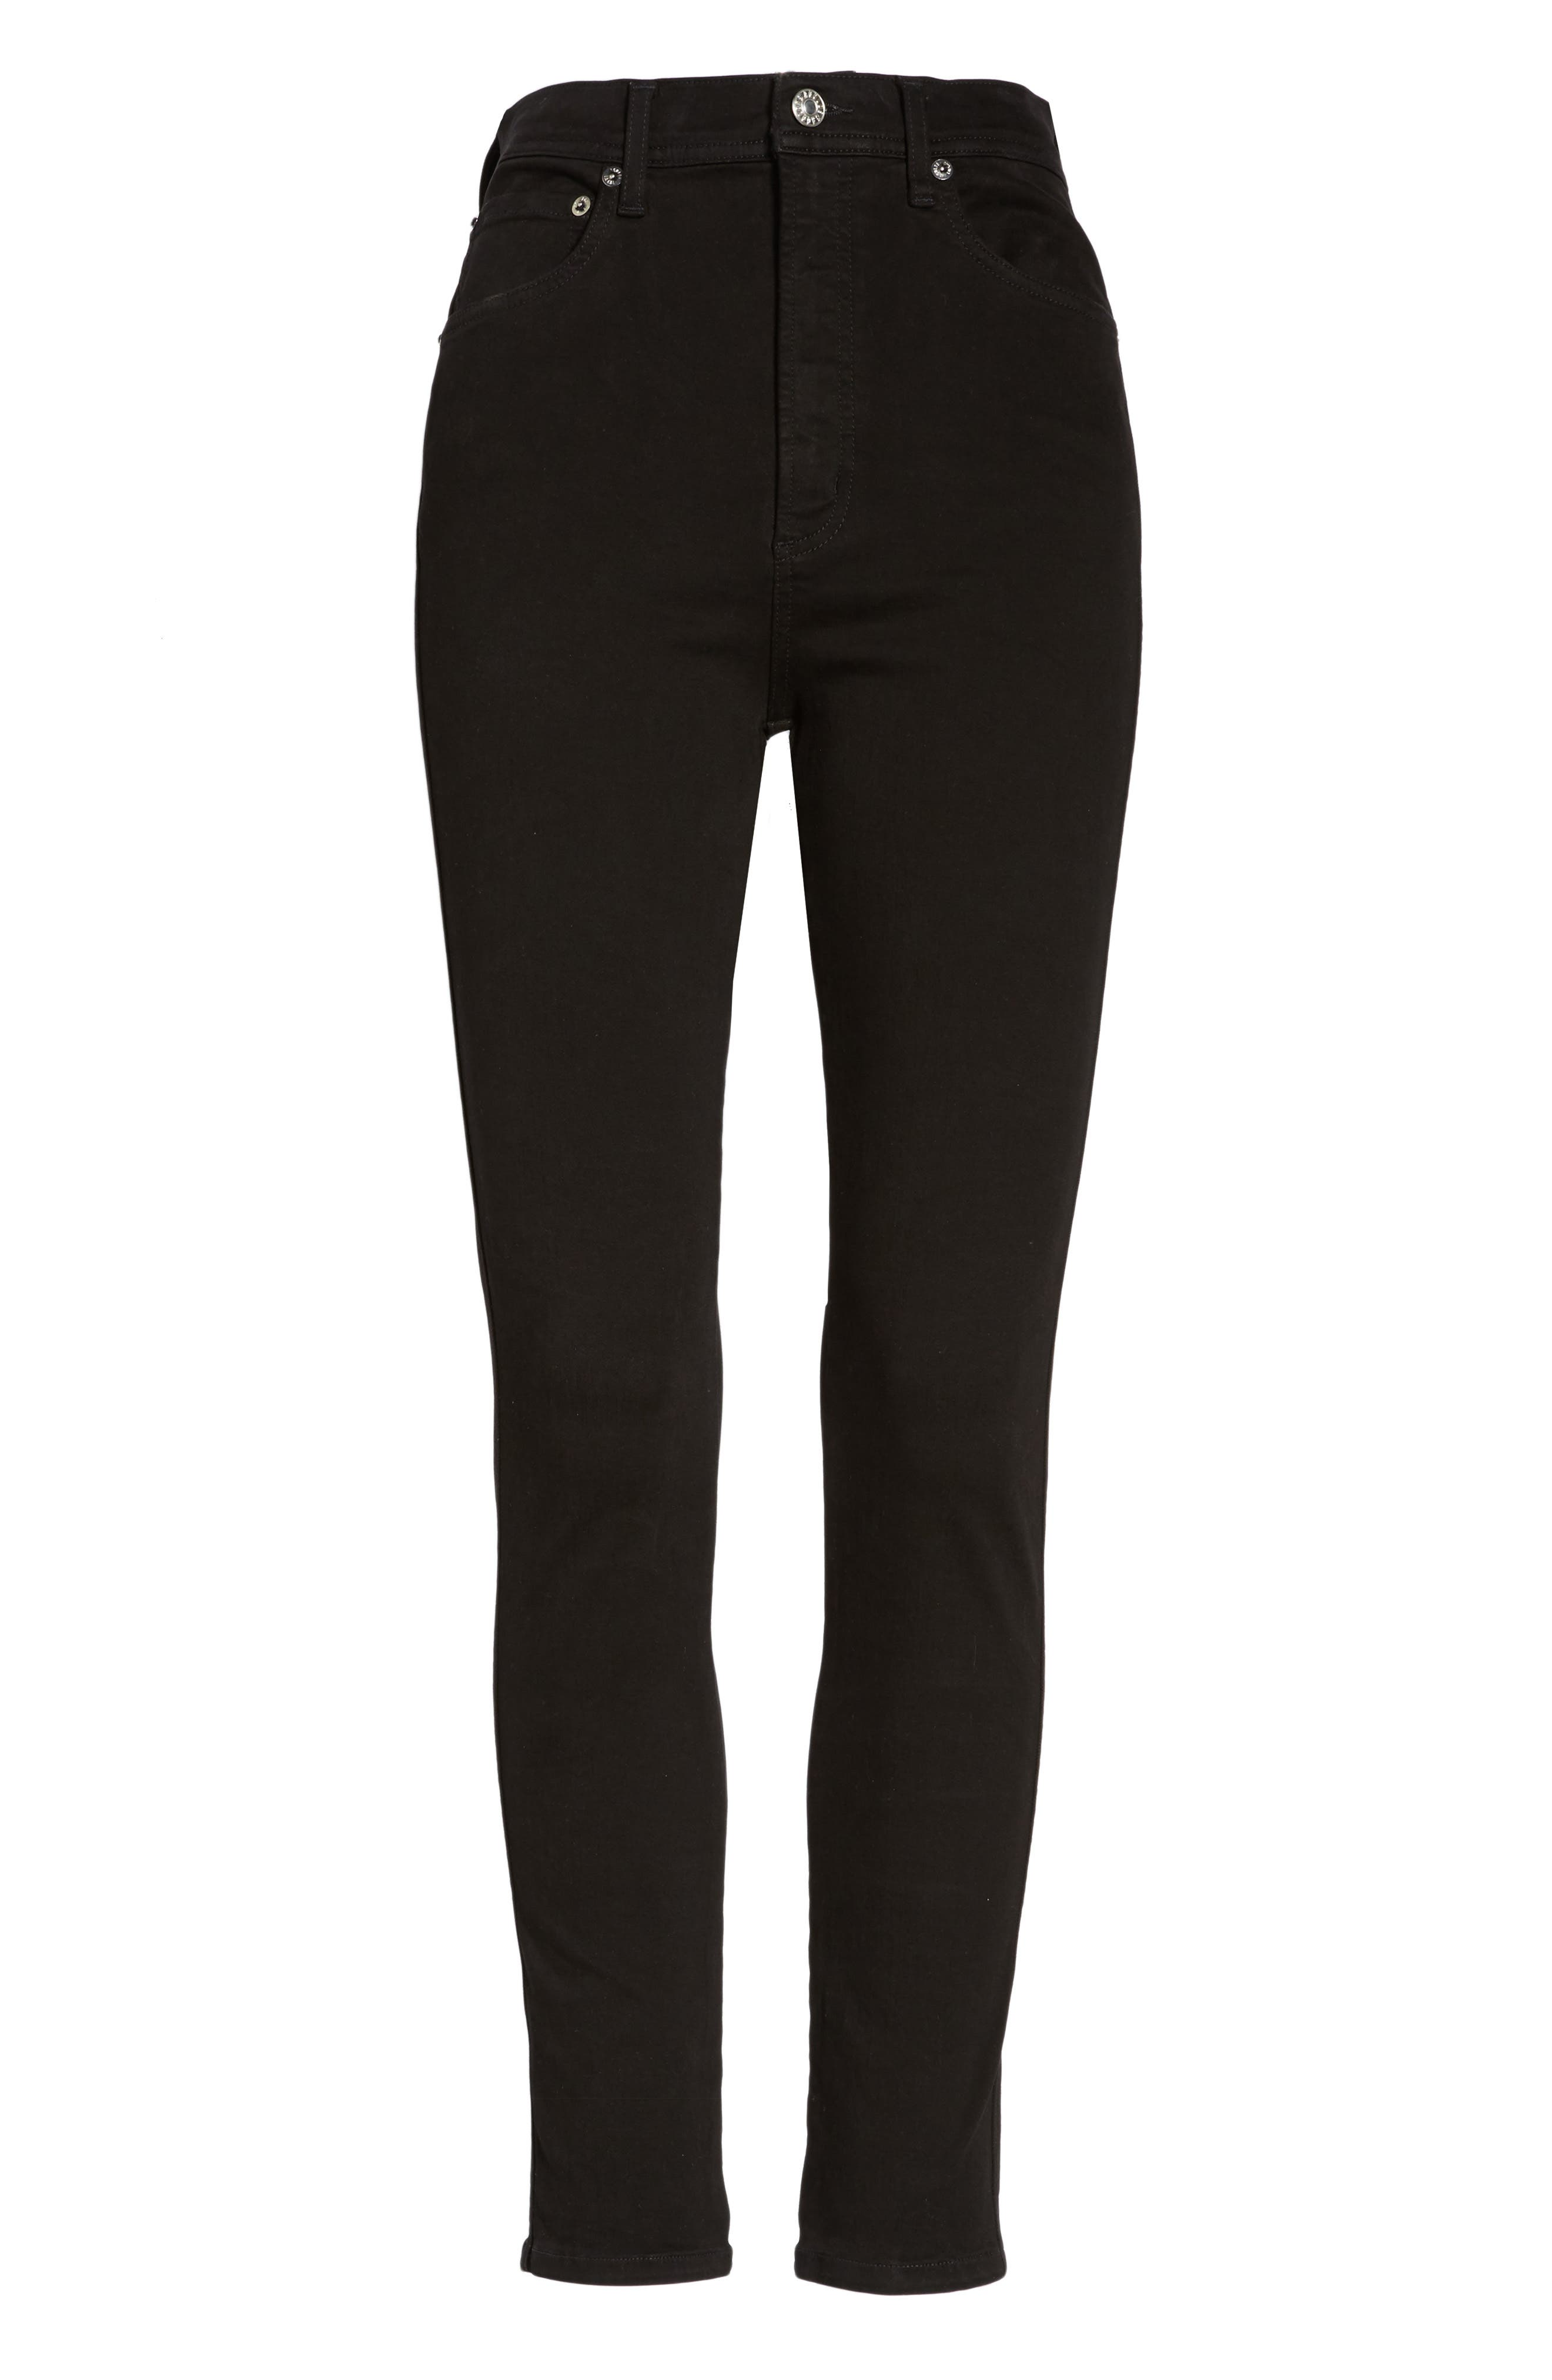 Roxanne Super High Rise Skinny Jeans,                             Alternate thumbnail 7, color,                             002